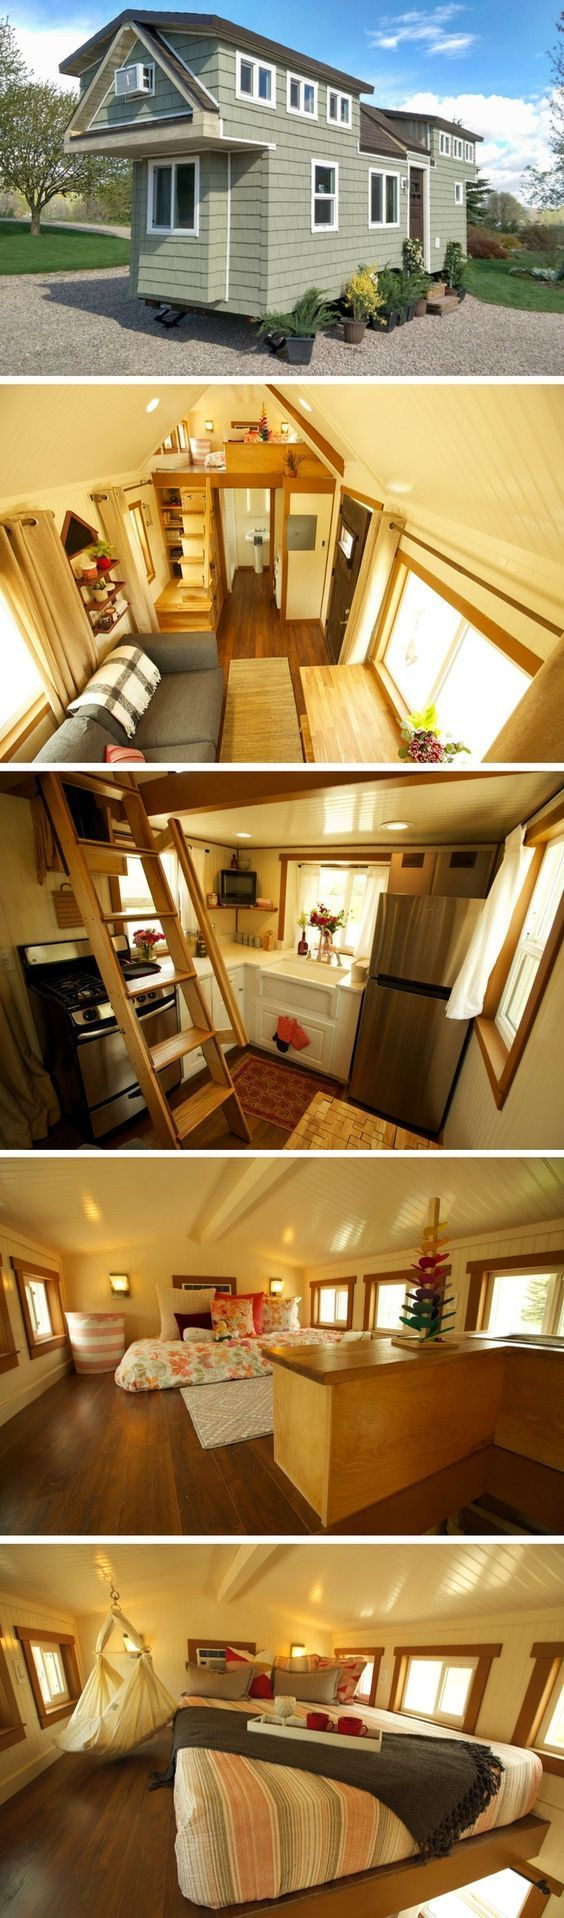 This beautiful, 200 sq ft tiny house was designed and built for a young family.  The home was created by Maximus Extreme Living Solutions of West Haven, Utah. It's design and building process were documented and featured on the popular show, Tiny House Nation.  The home's layout includes a full kitchen, bathroom, living room, dining space and two loft bedrooms.